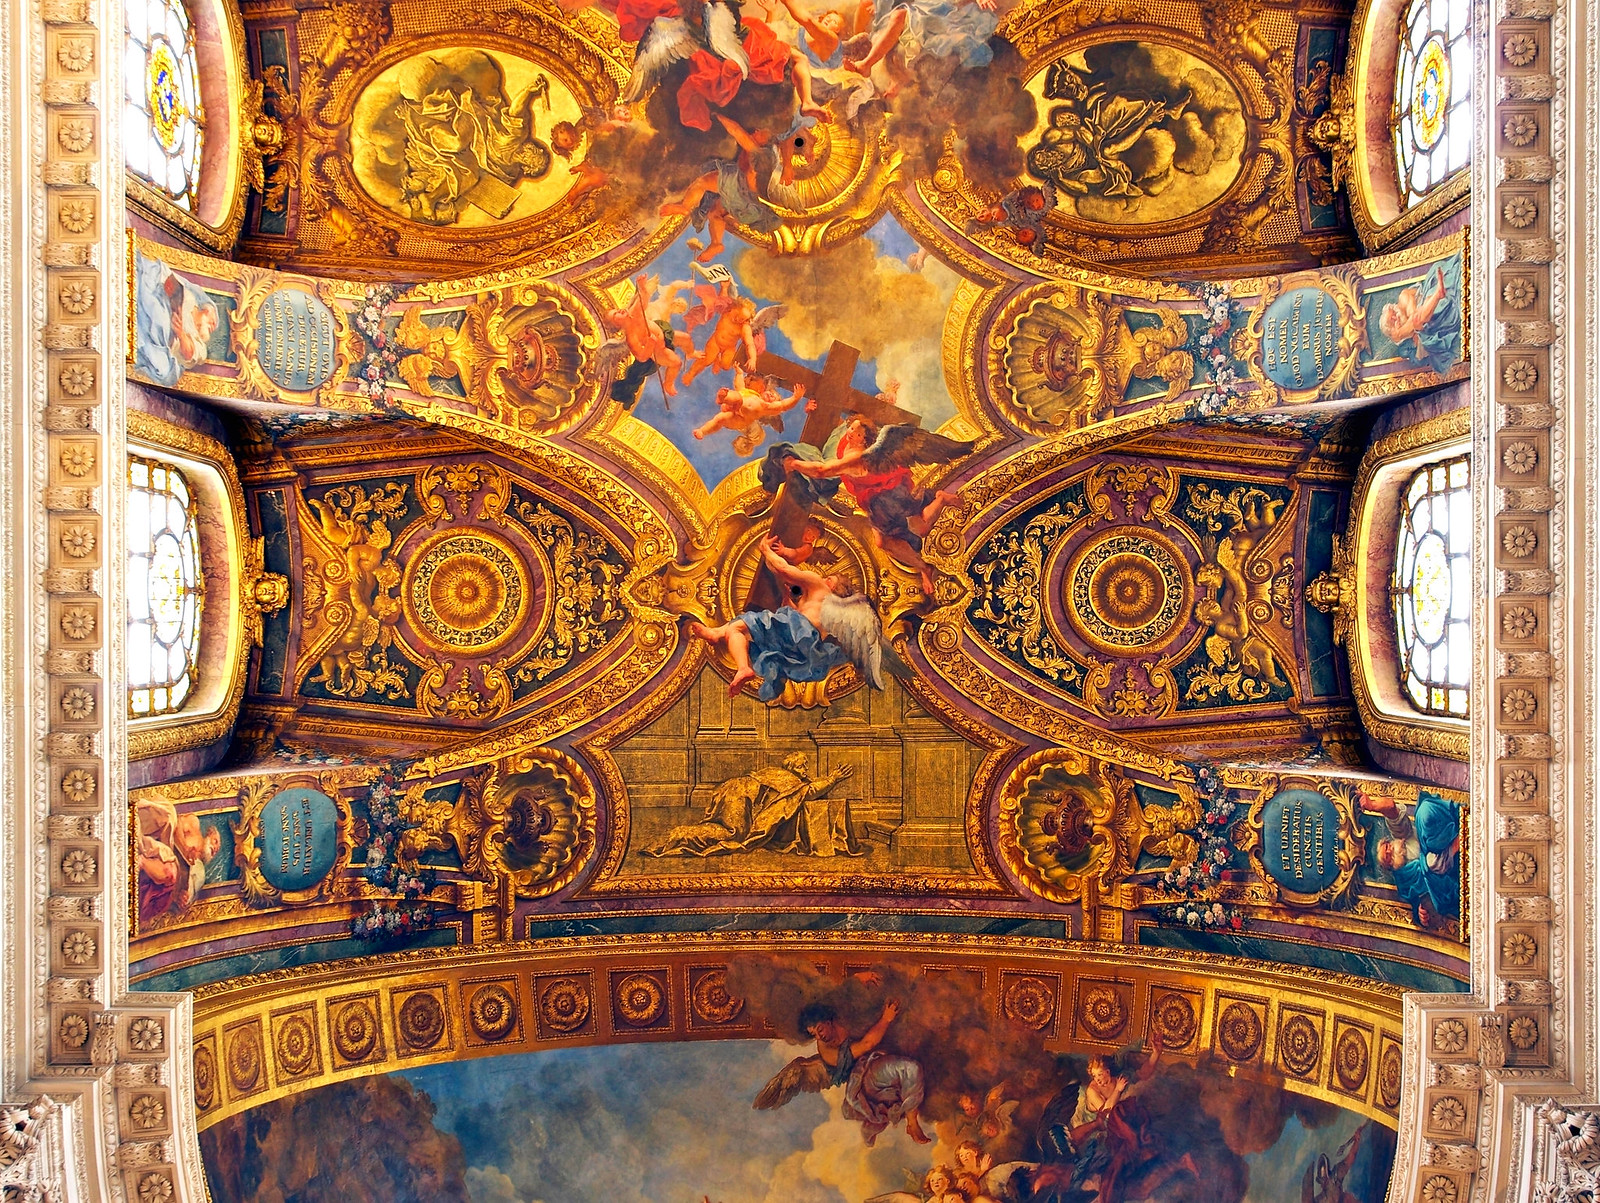 Royal chapel of the Palace of Versailles. Credit Jebulon